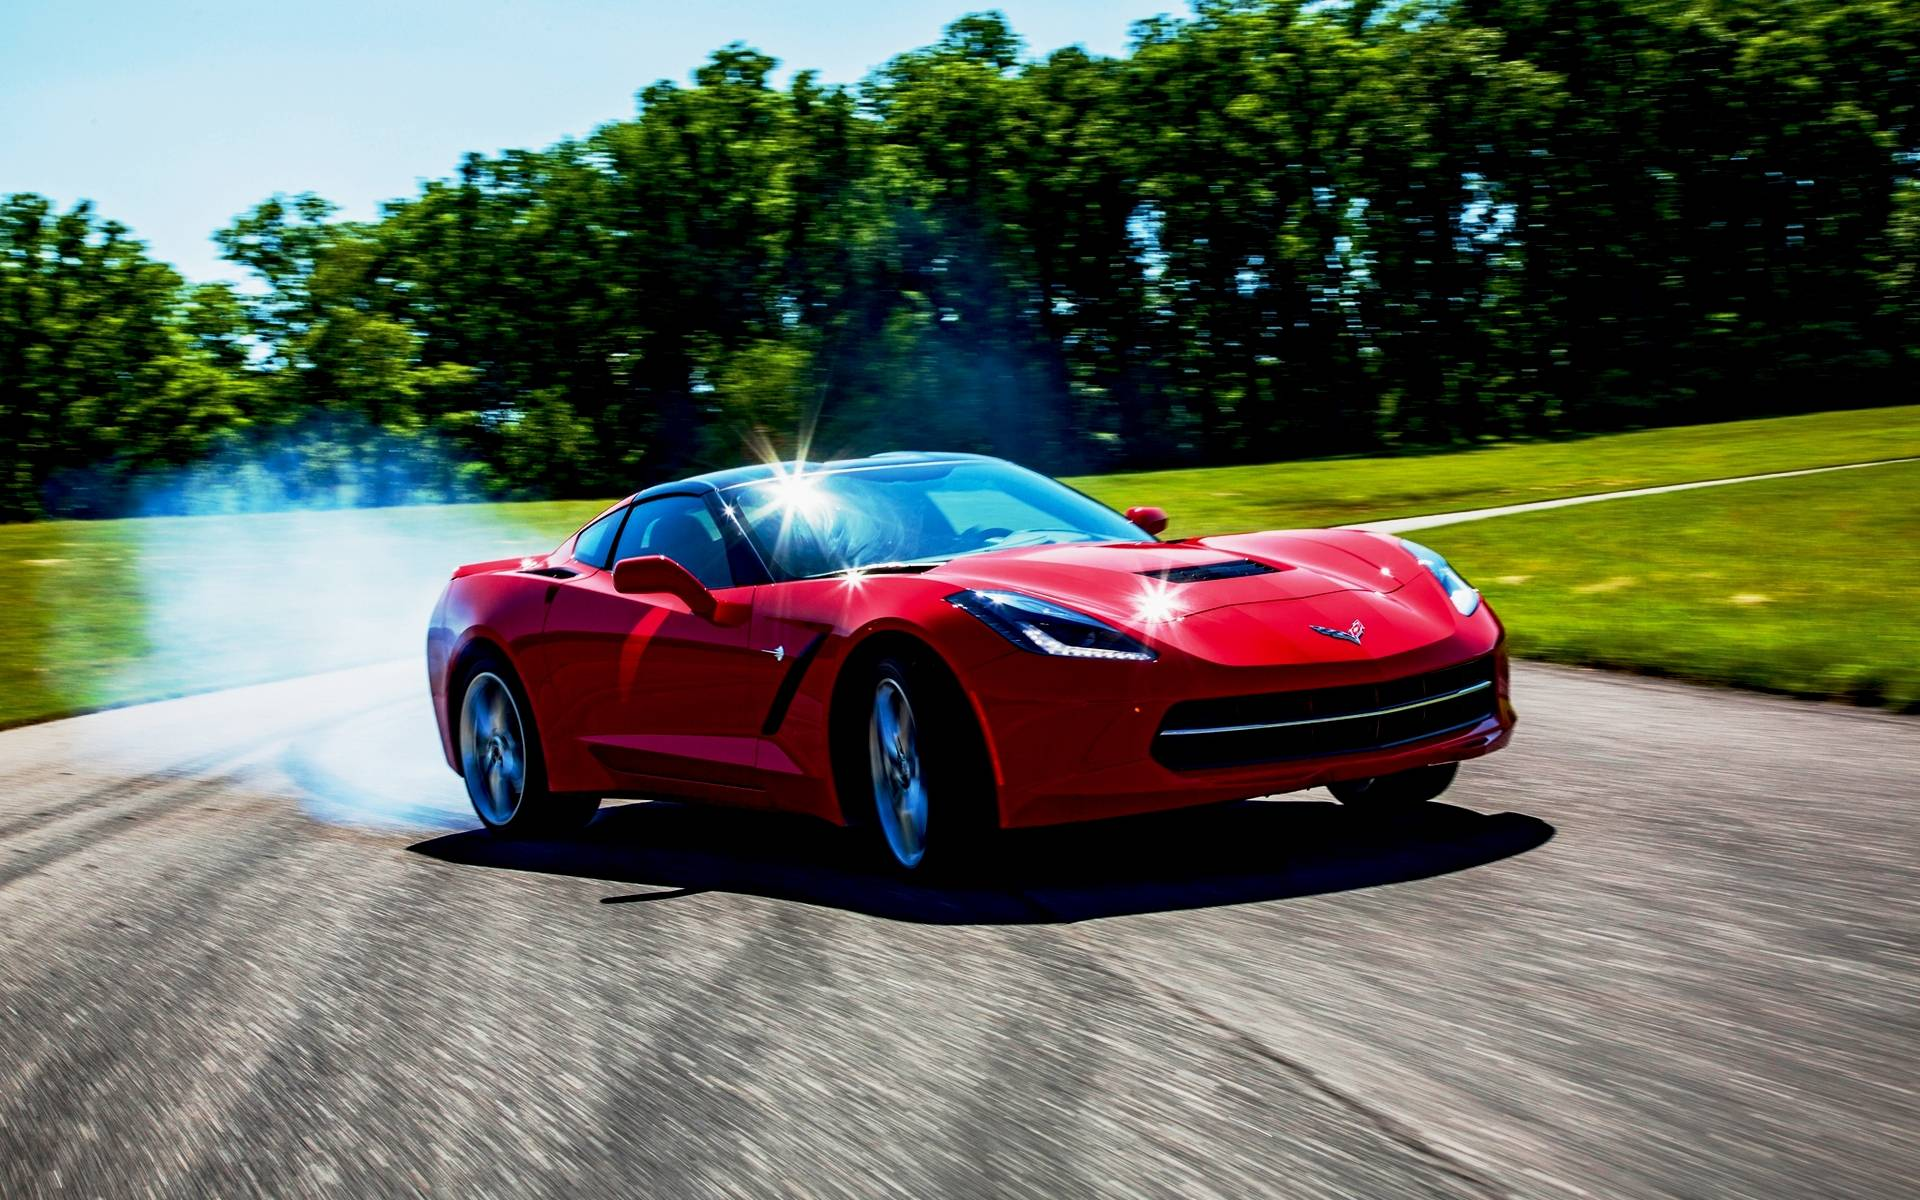 2014 Corvette Stingray